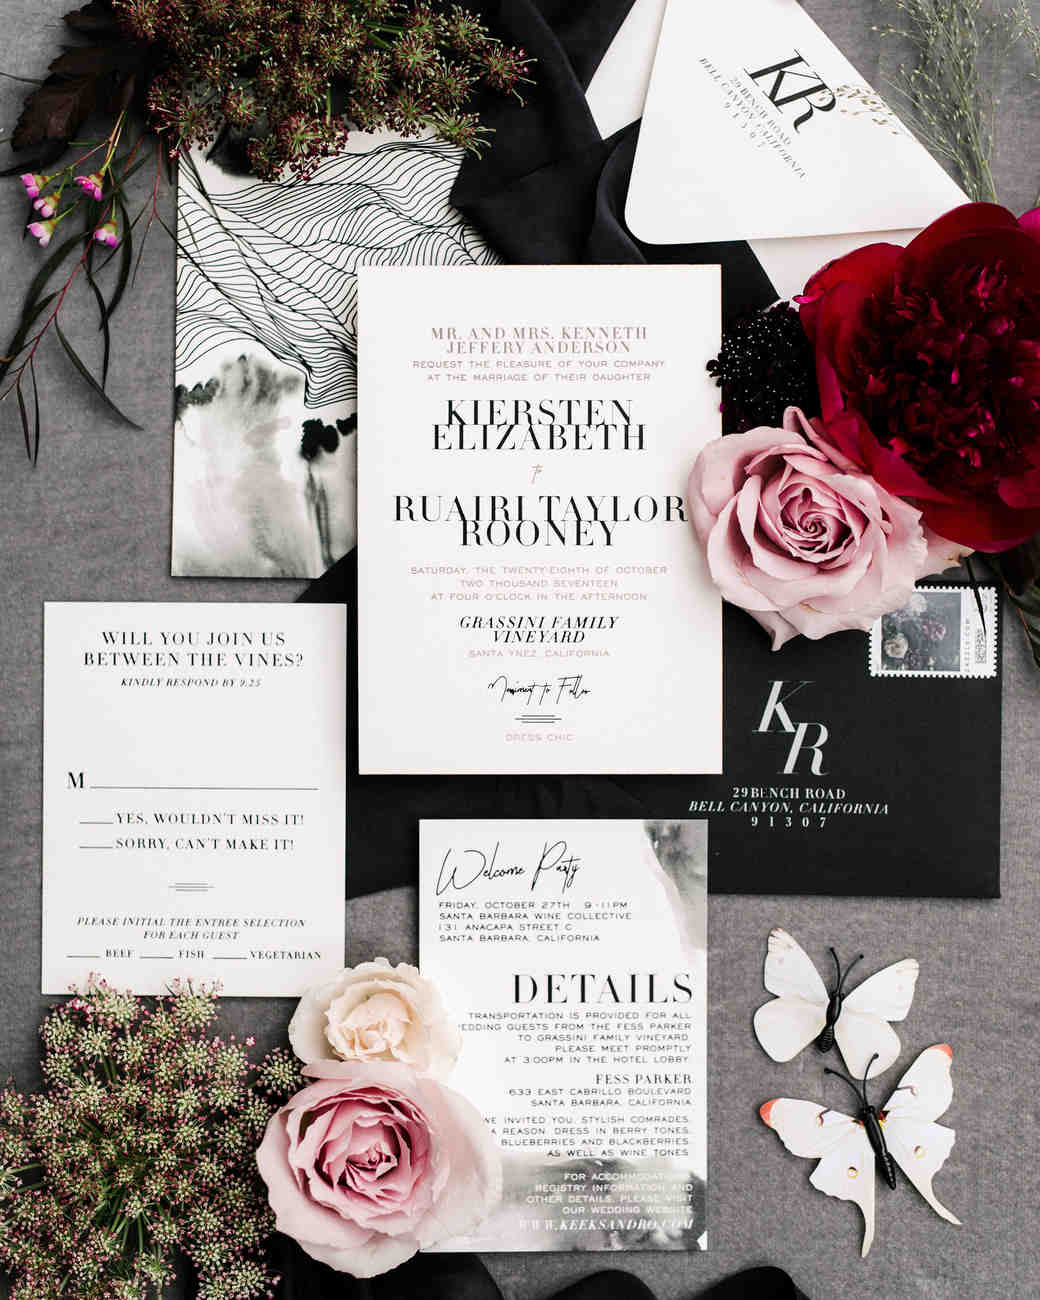 kiersten ruairi wedding invitation